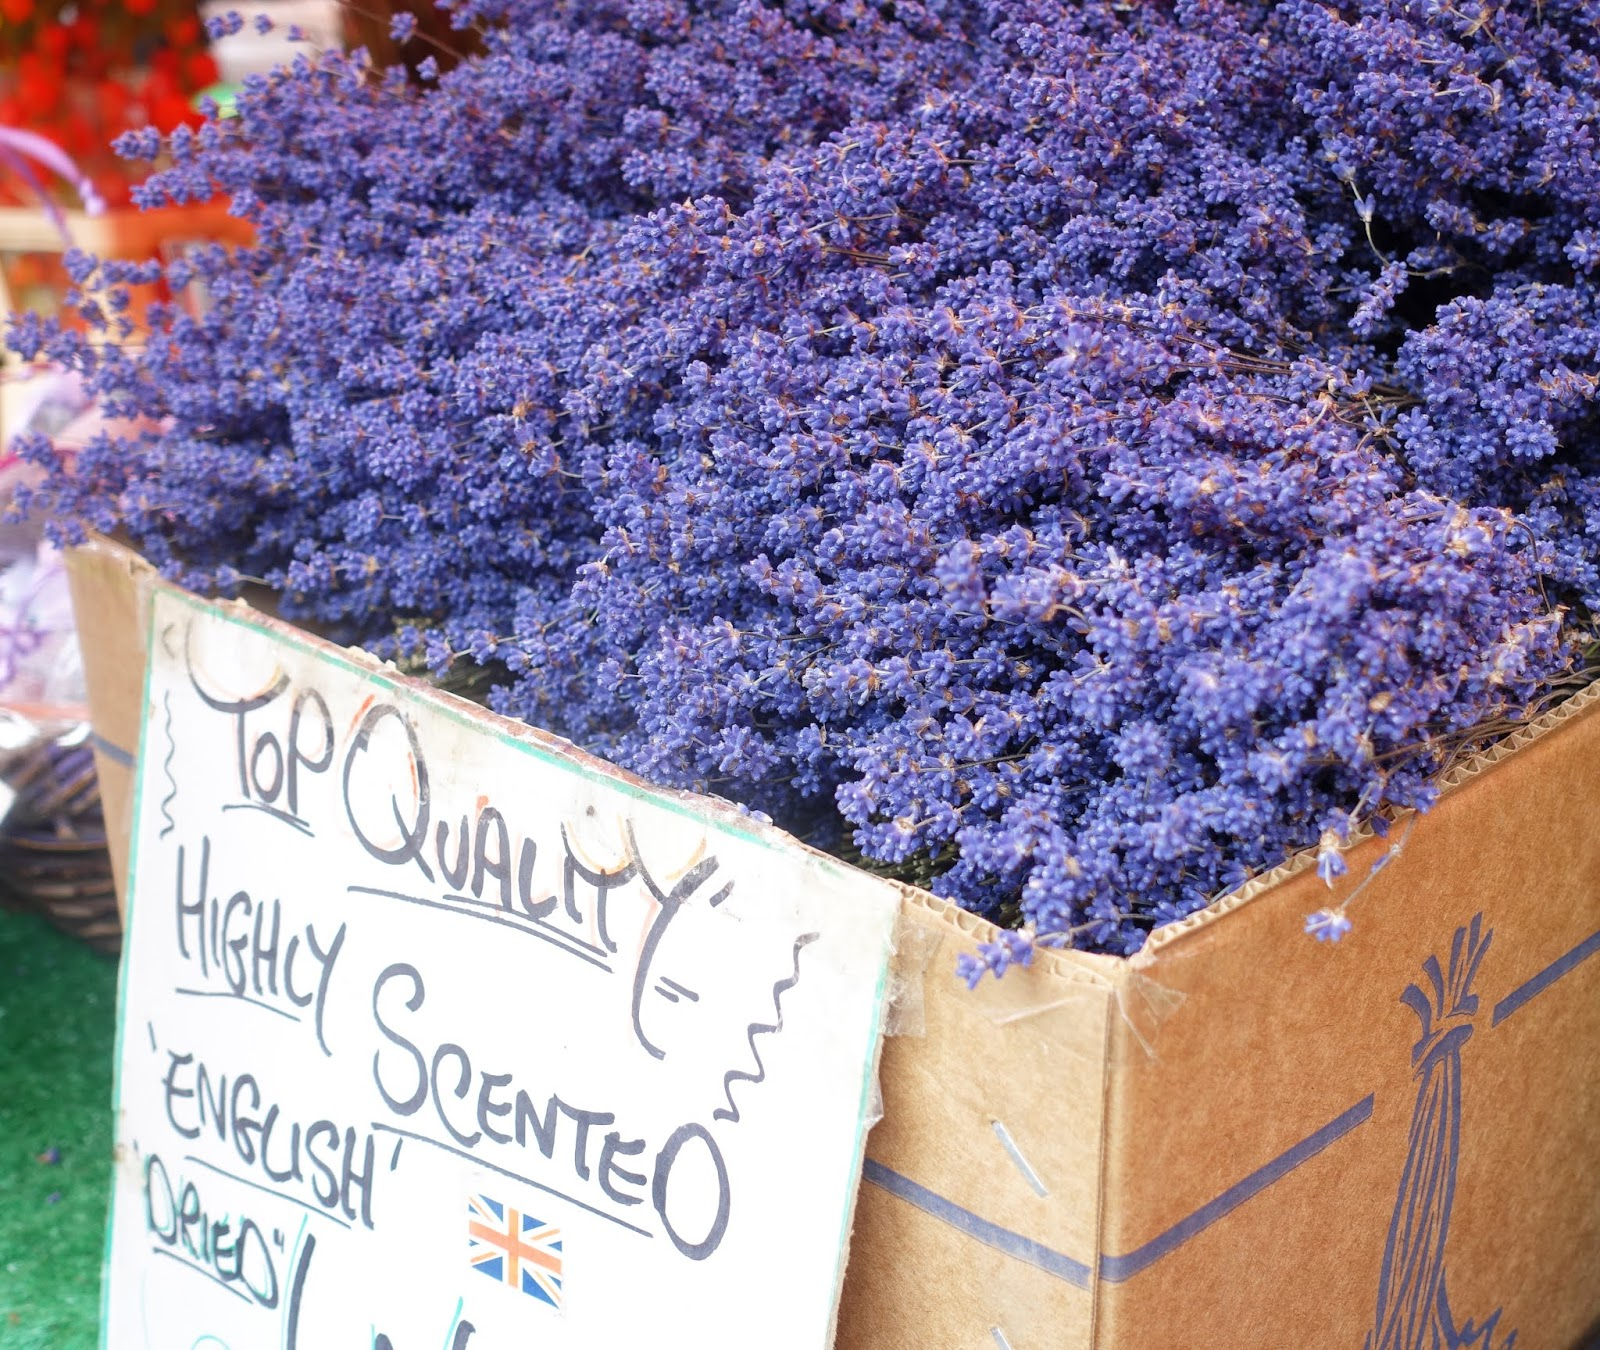 Fragrance to keep summer alive in the home from dried lavender